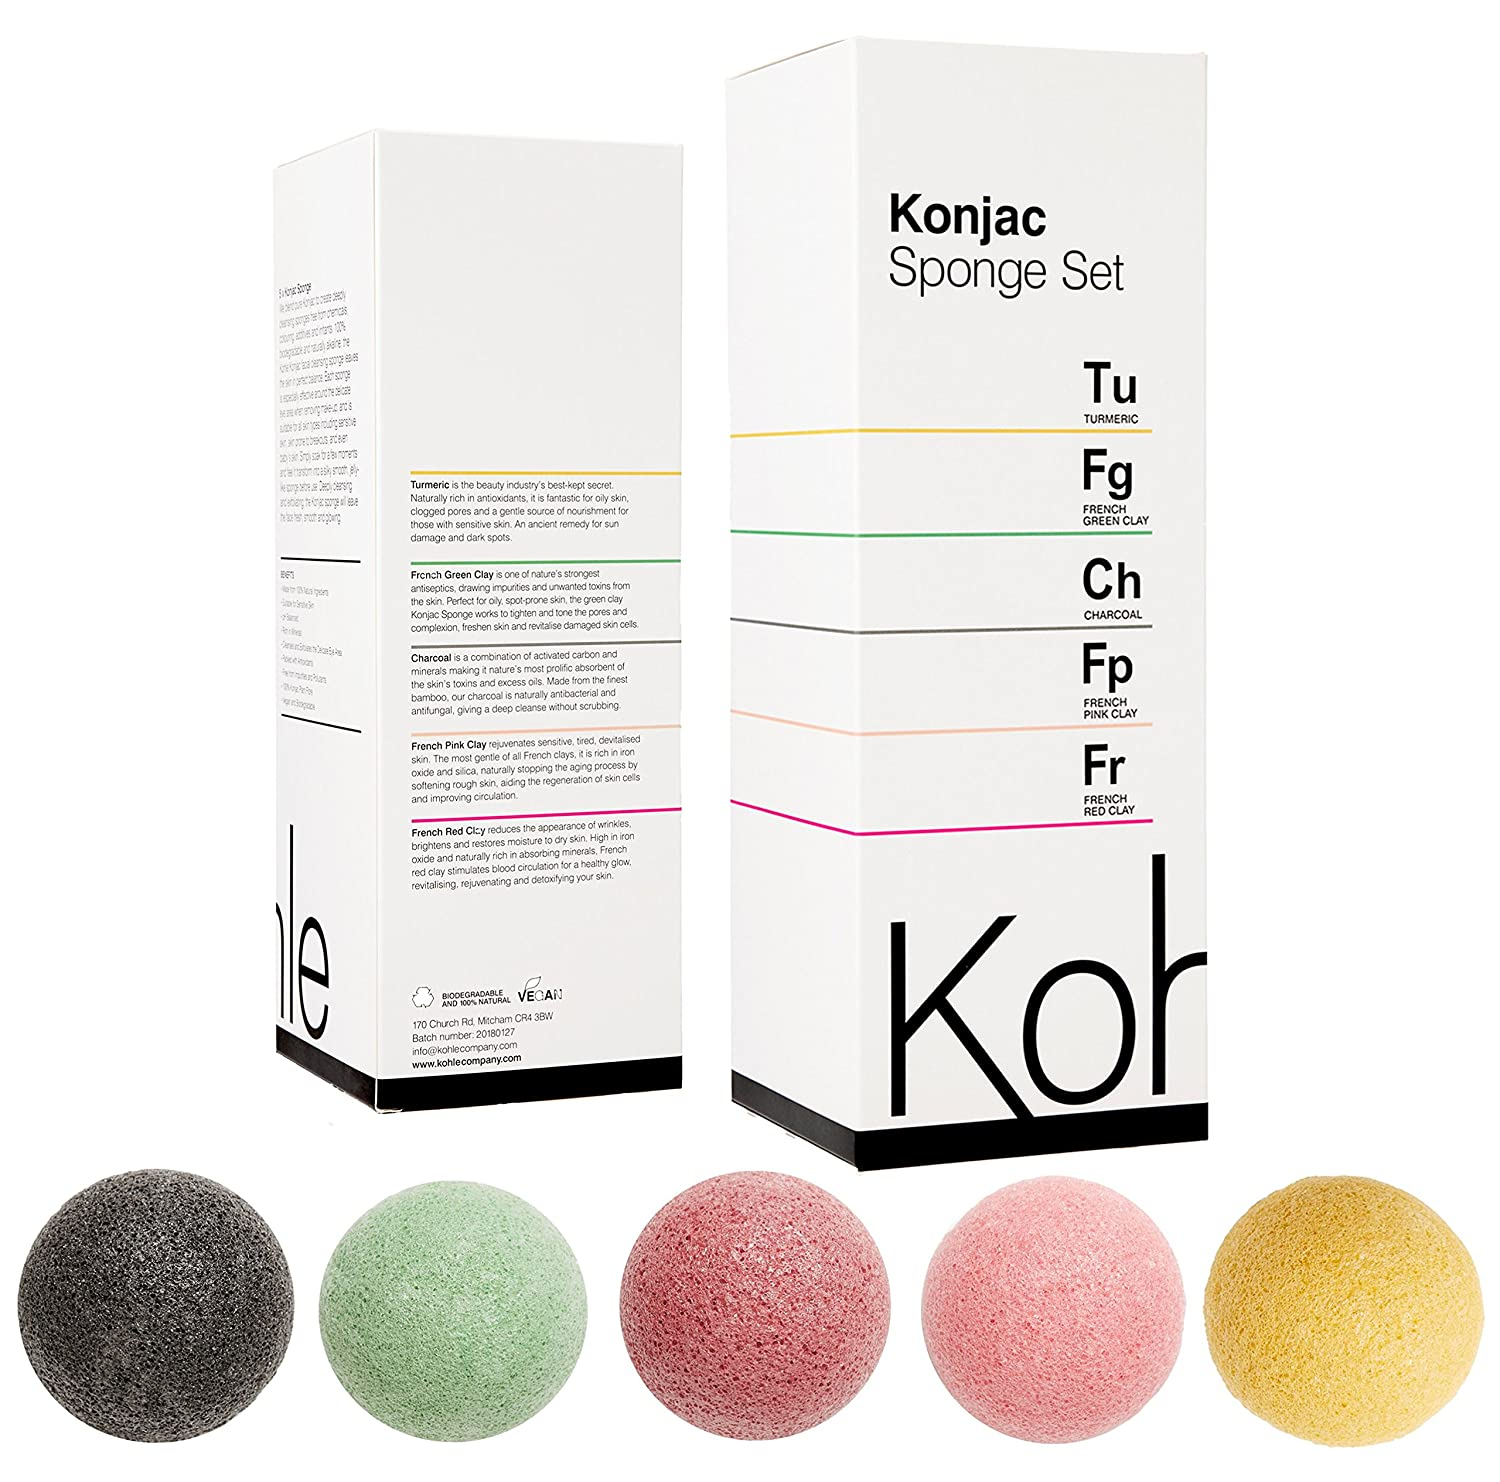 Konjac Sponge Set (5 Pack): Organic Skincare Face & Body Cleansing + Exfoliating Sponges, 100% Pure Facial & Hypoallergenic #1 UK BESTSELLER. Charcoal, Turmeric, French Green, Red & Pink Clay. Kohle Company